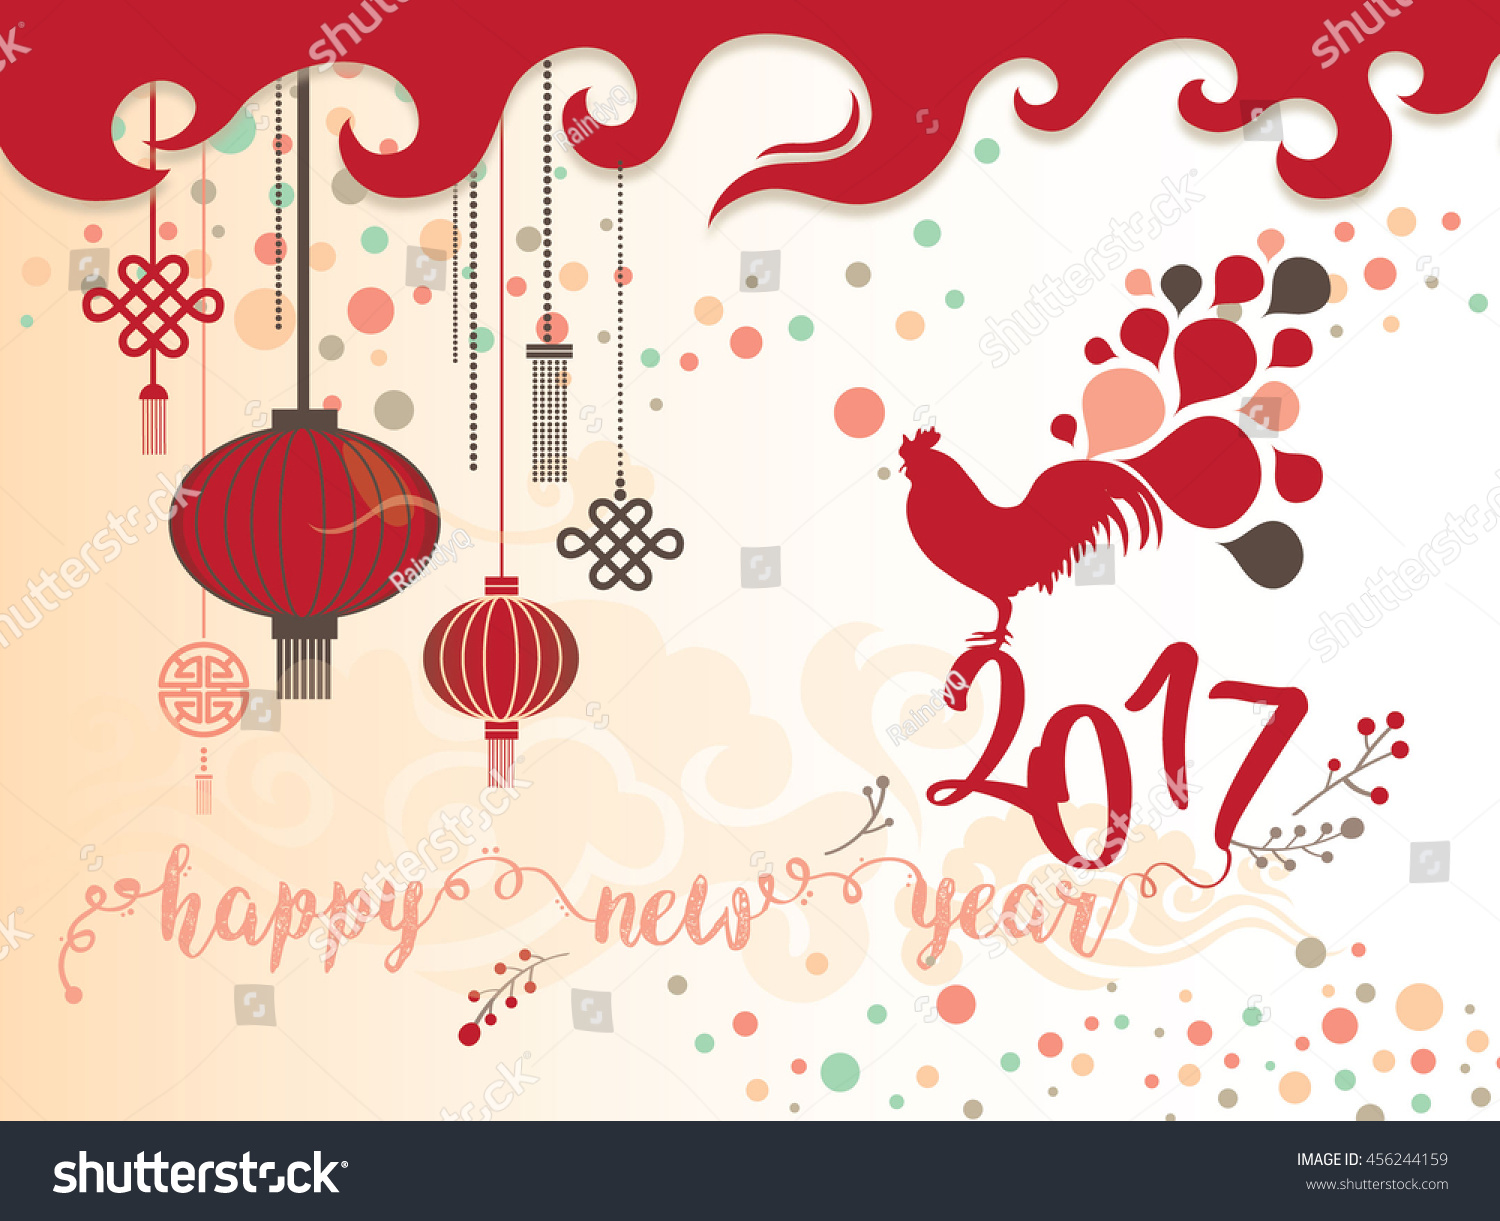 image Year of the rooster 2017